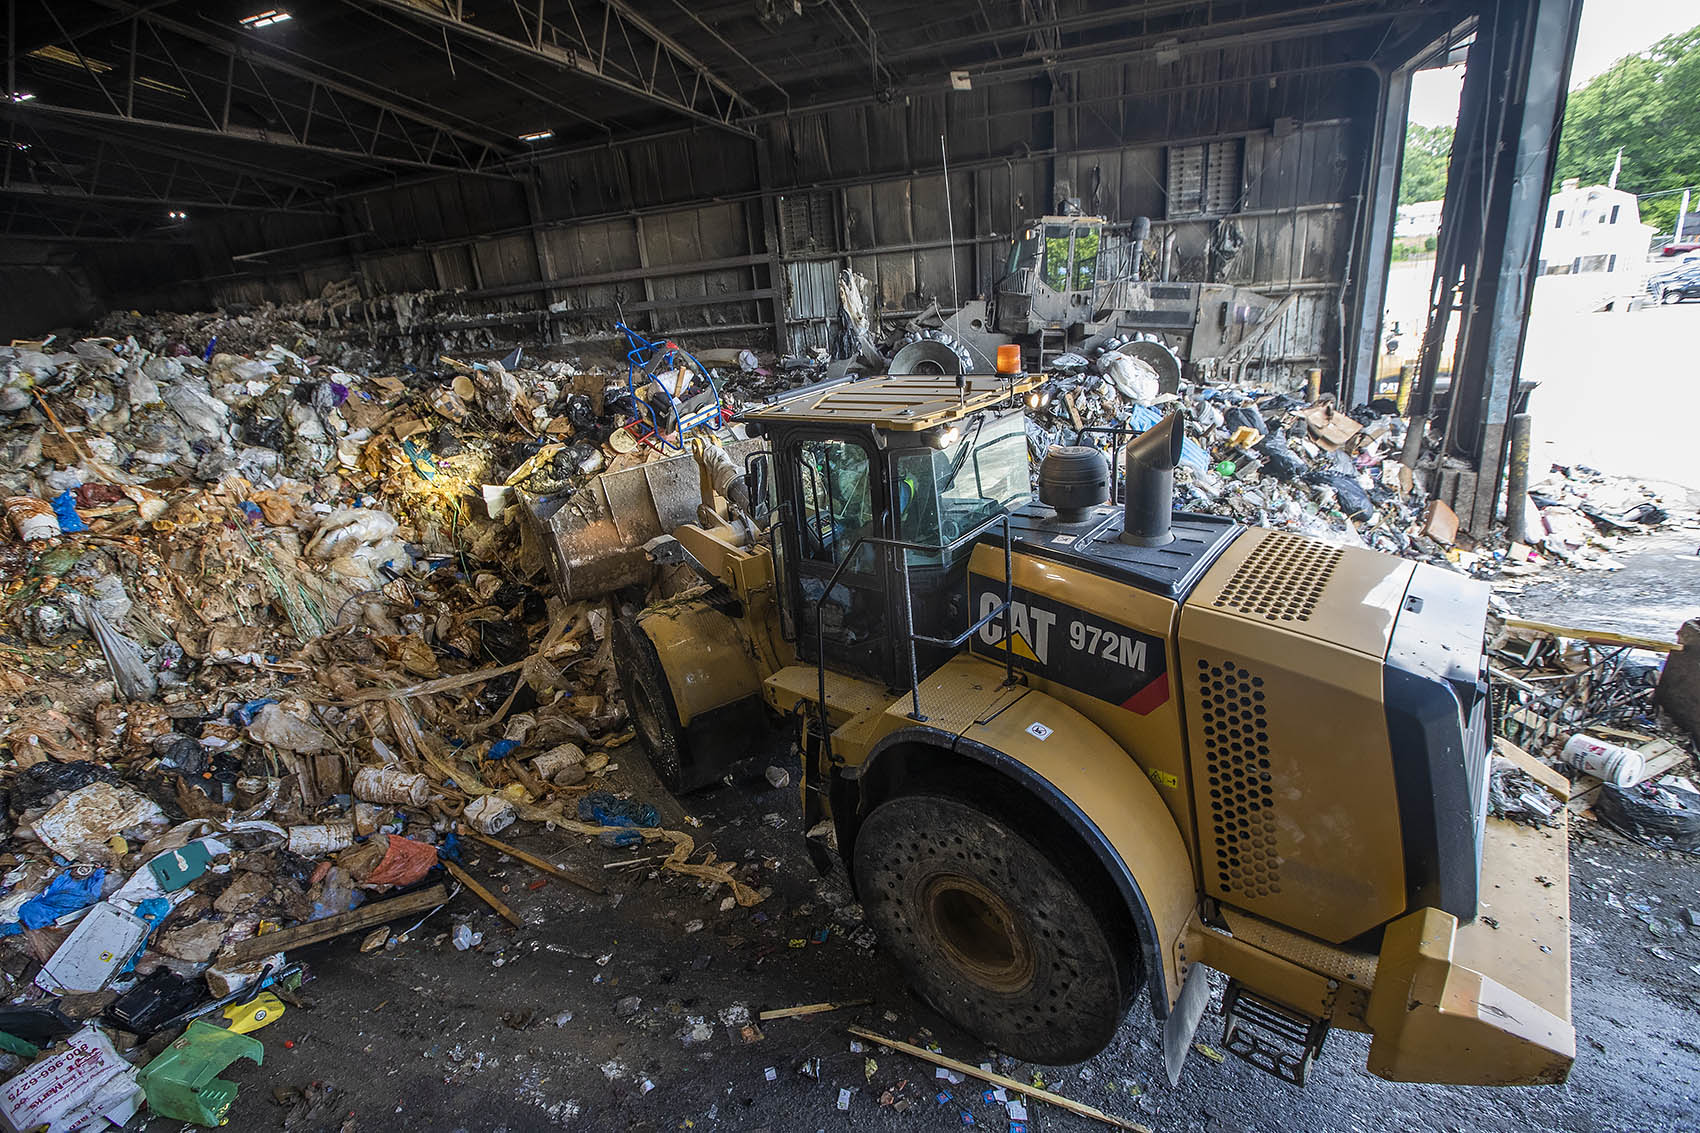 At E.L. Harvey & Sons in Westborough, two land movers push about 1,000 tons of trash into the rear of a warehouse to be baled, packed and shipped out across the country. (Jesse Costa/WBUR)